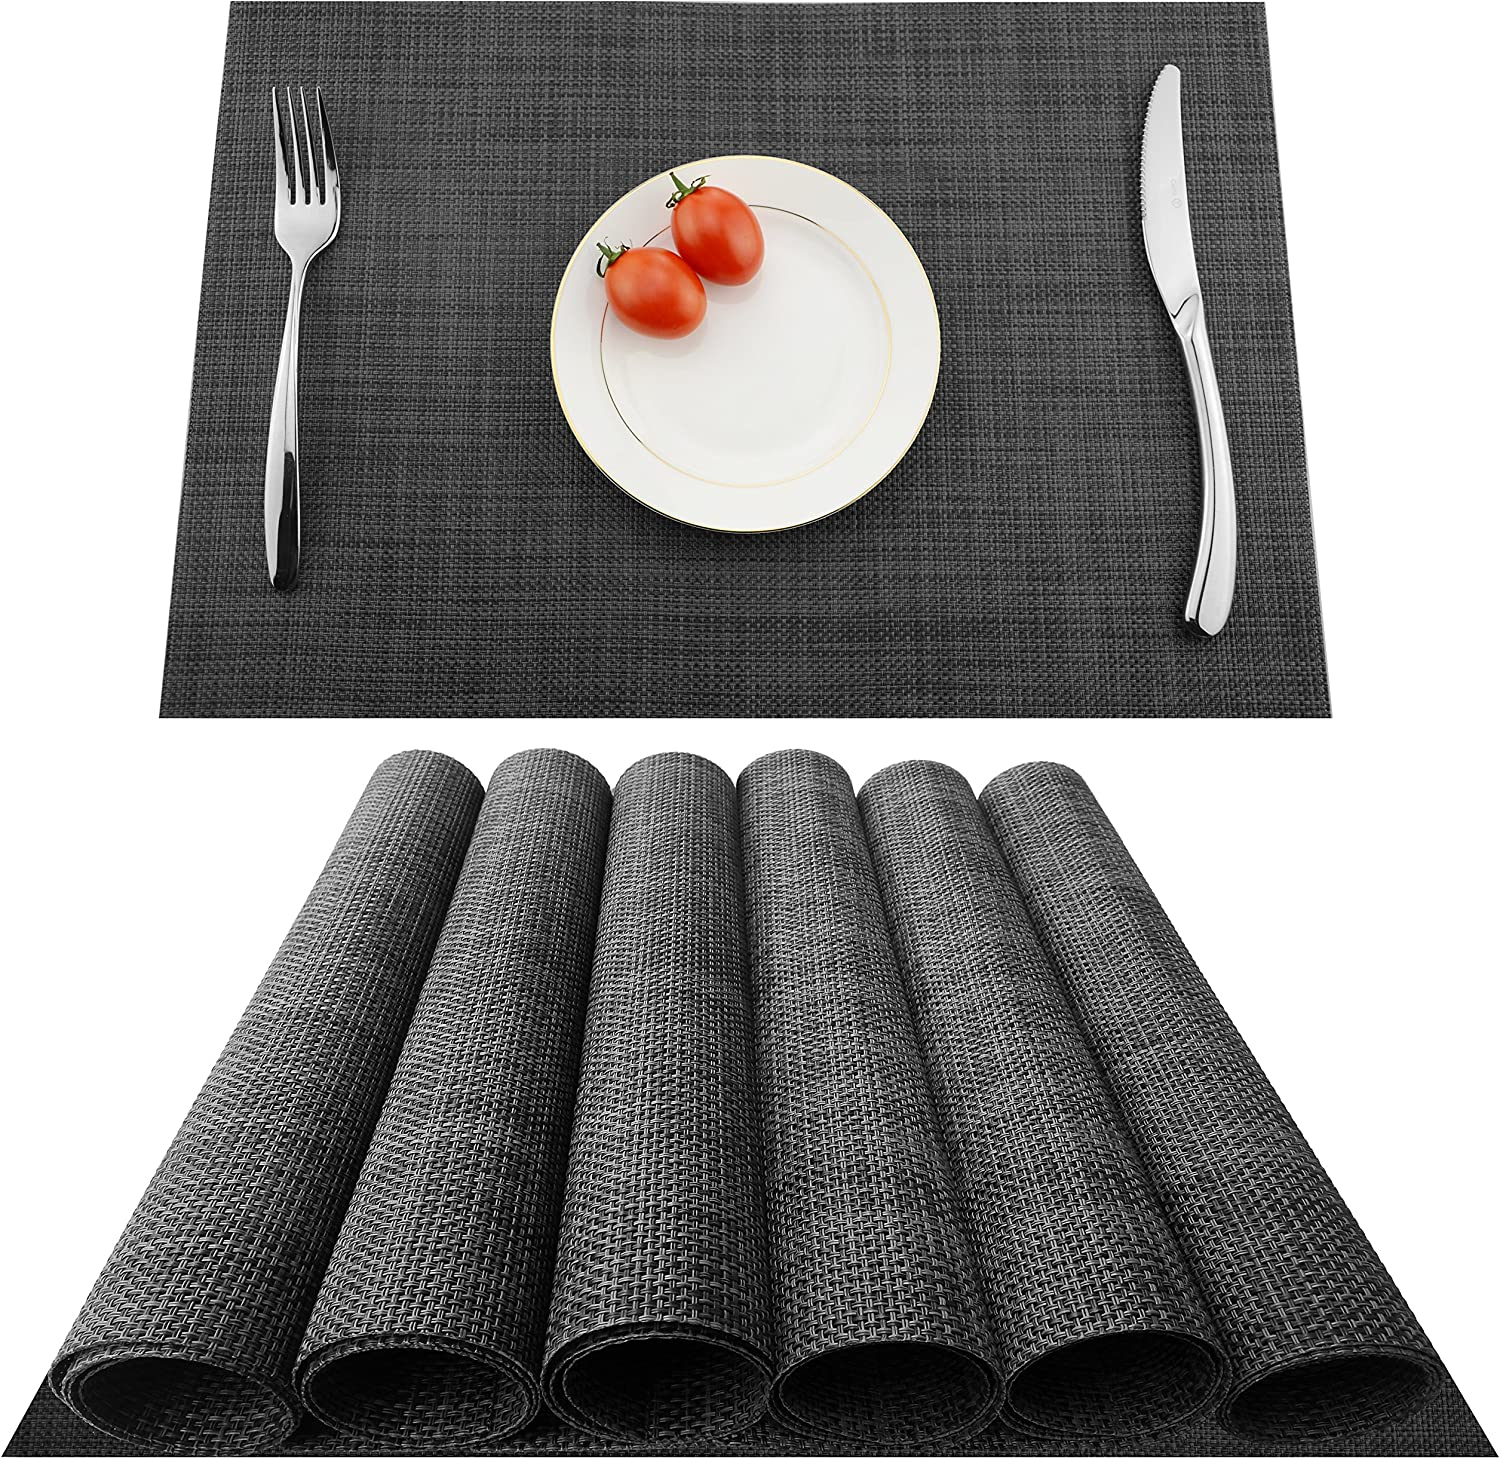 KOKAKO Placemats Heat-Resistant Washable Dining Table Place Mats PVC Kitchen Table Mats by,Set of 6(Dark Gray): Home & Kitchen